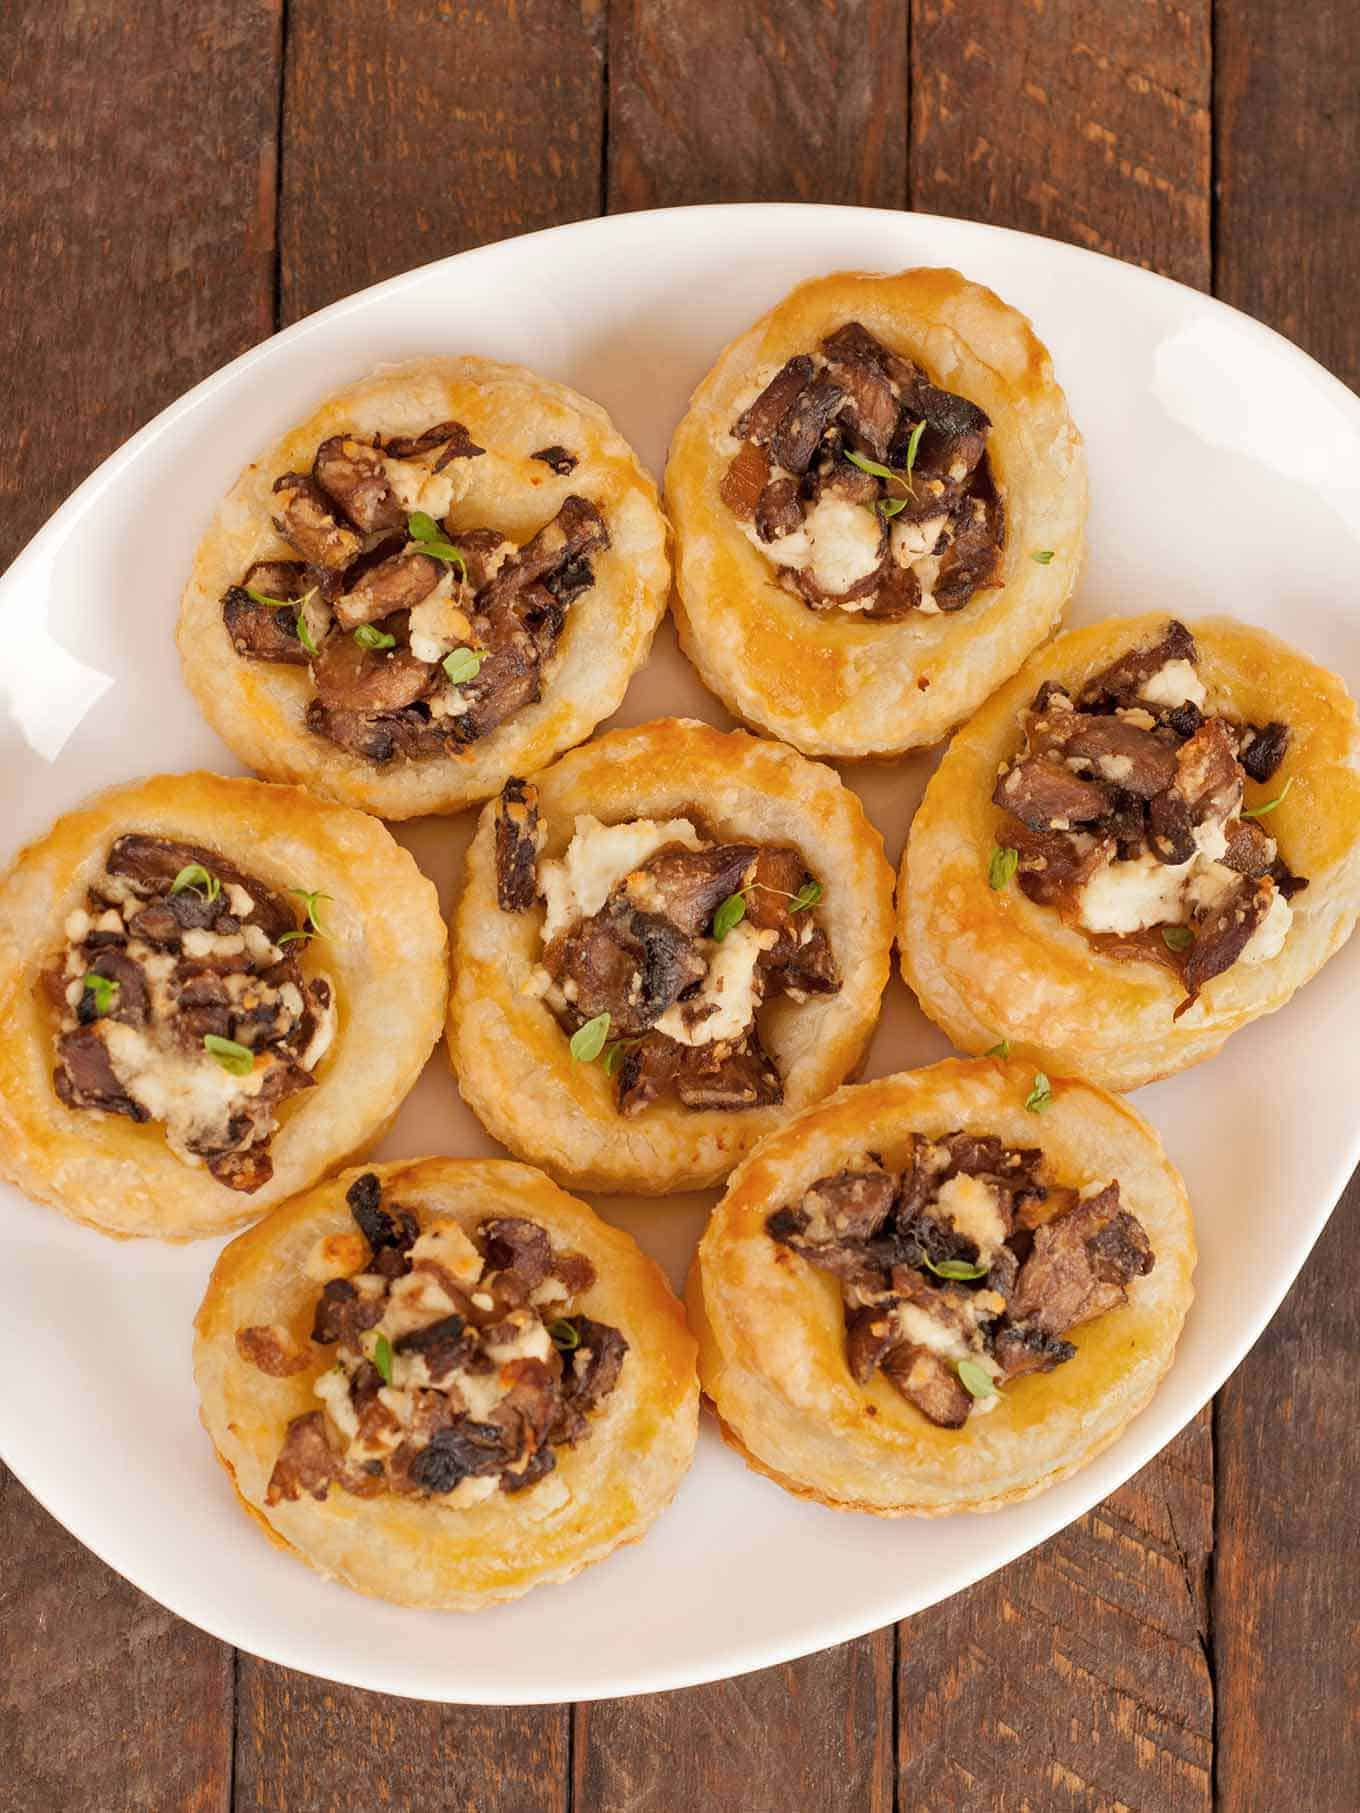 A serving plate with puff pastry cups filled with sautéed mushrooms and crumbled goat cheese.